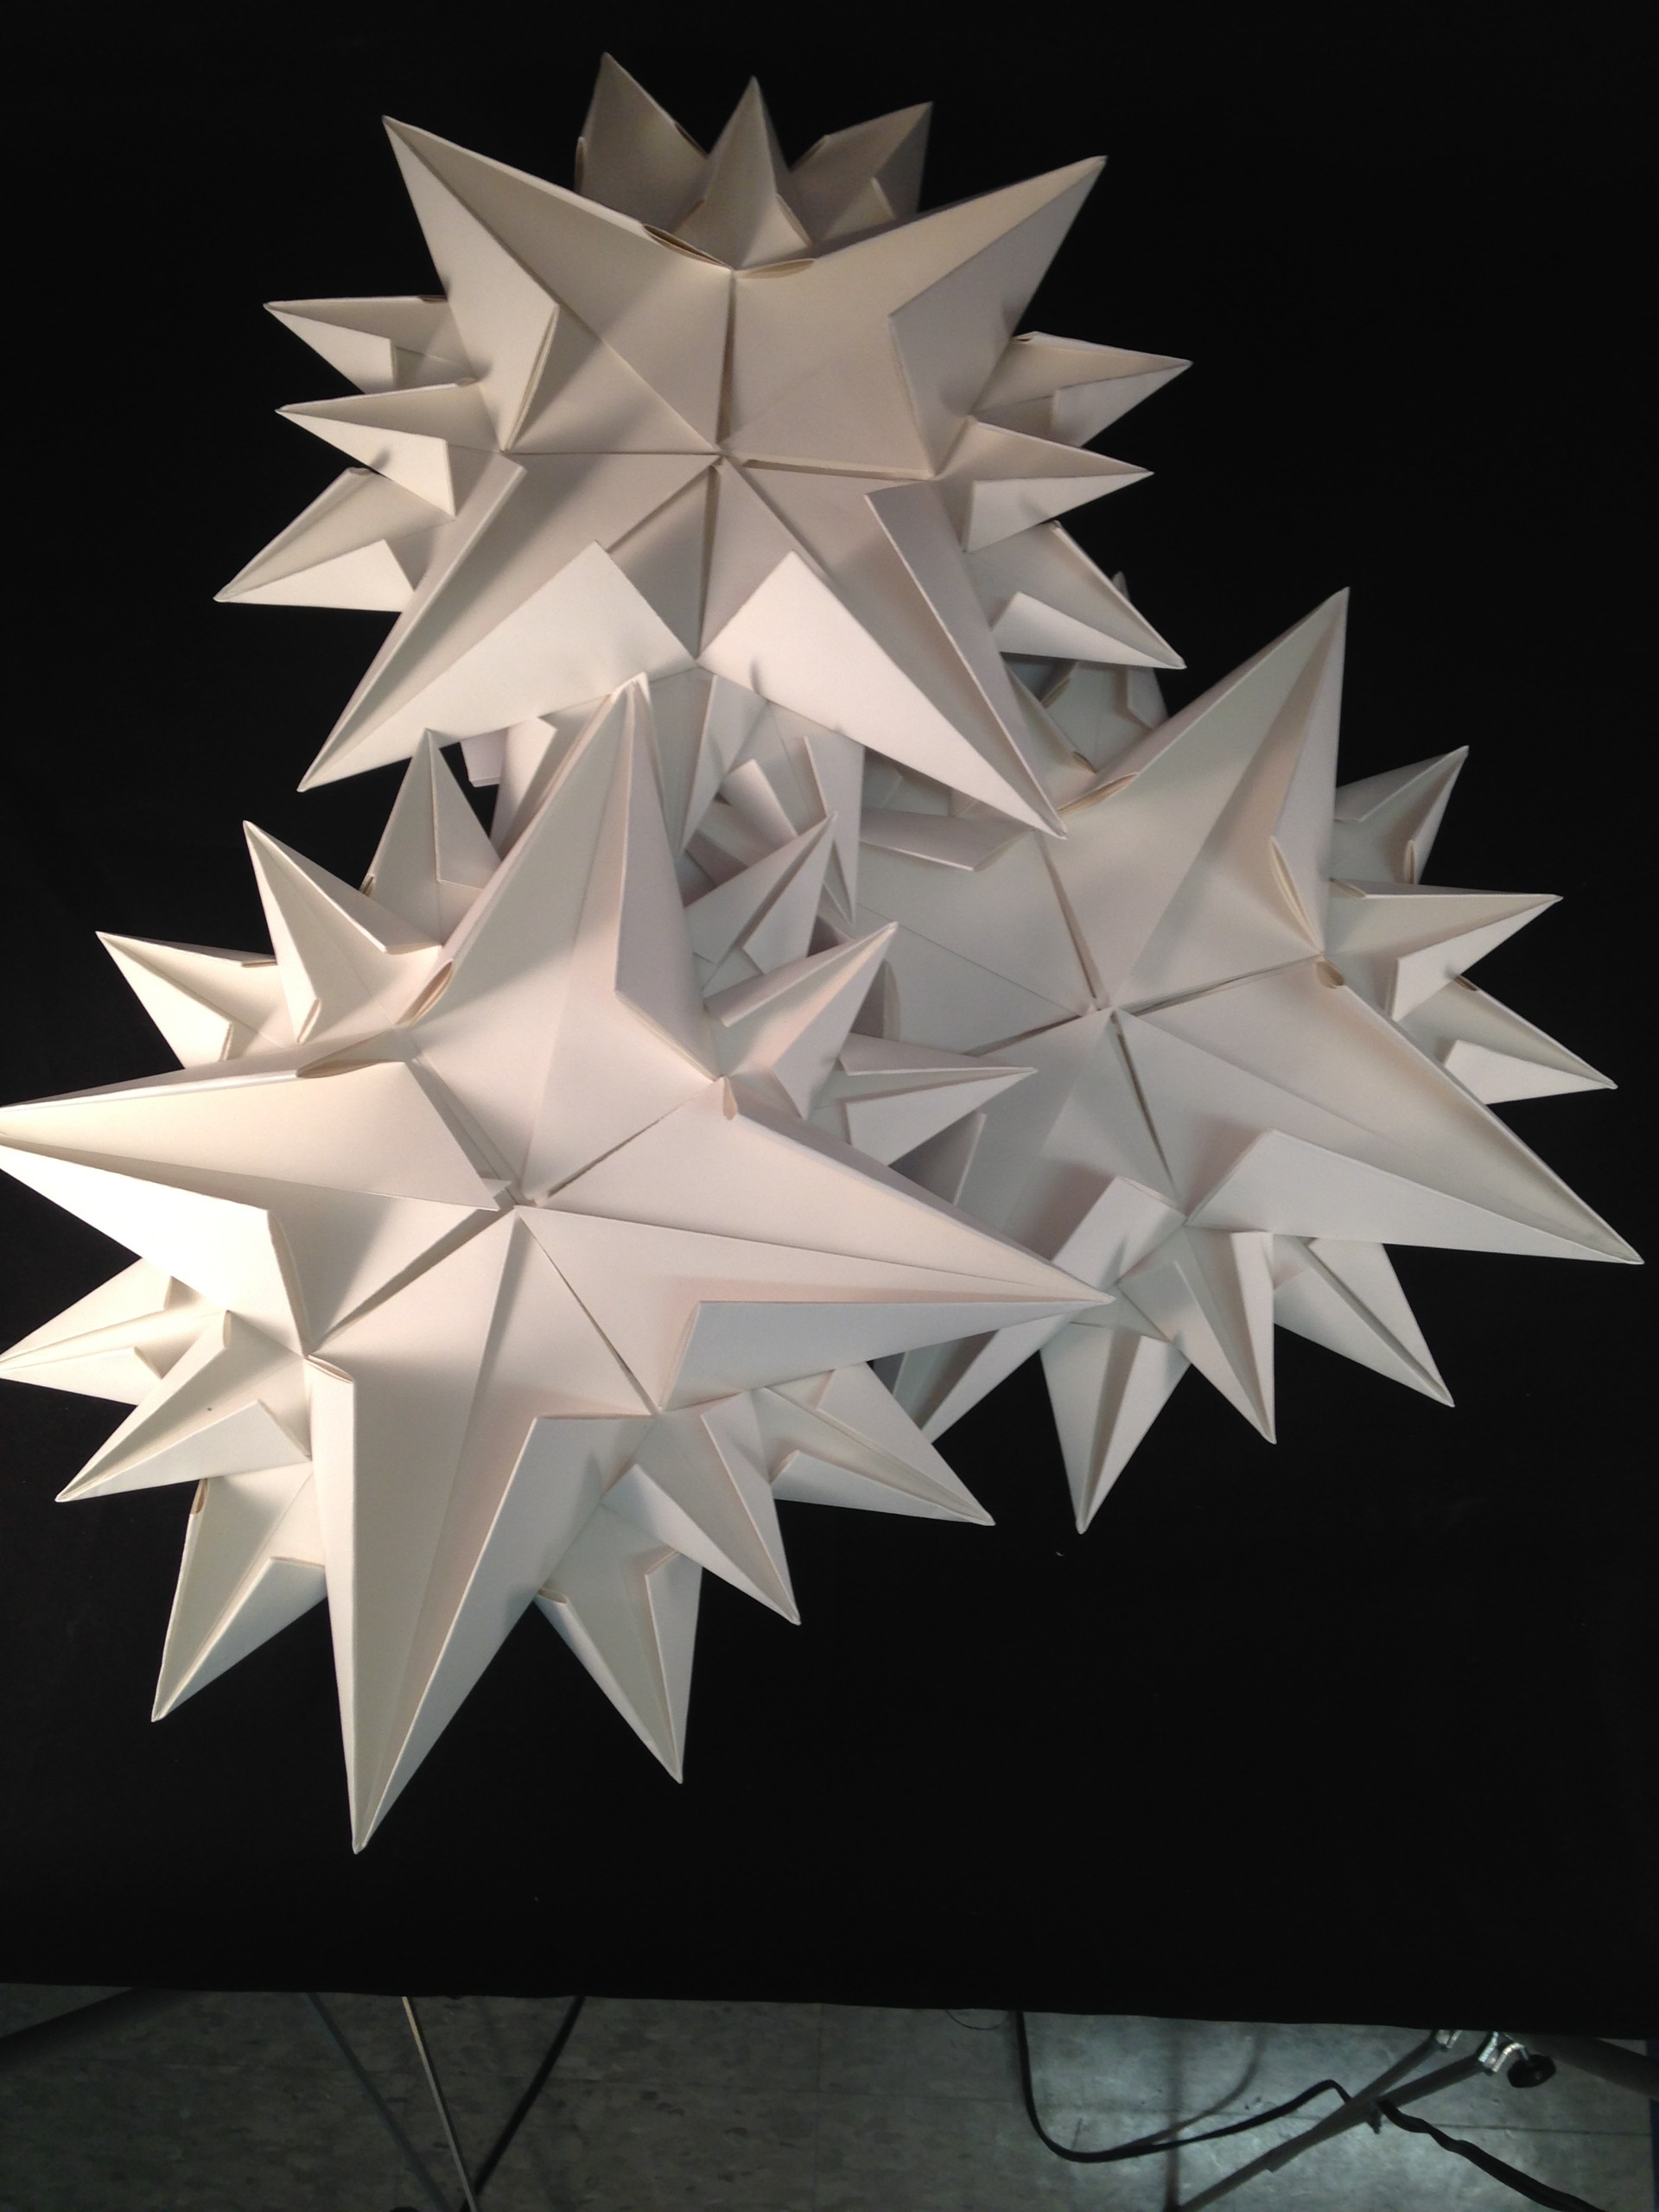 paper sculpture of stars